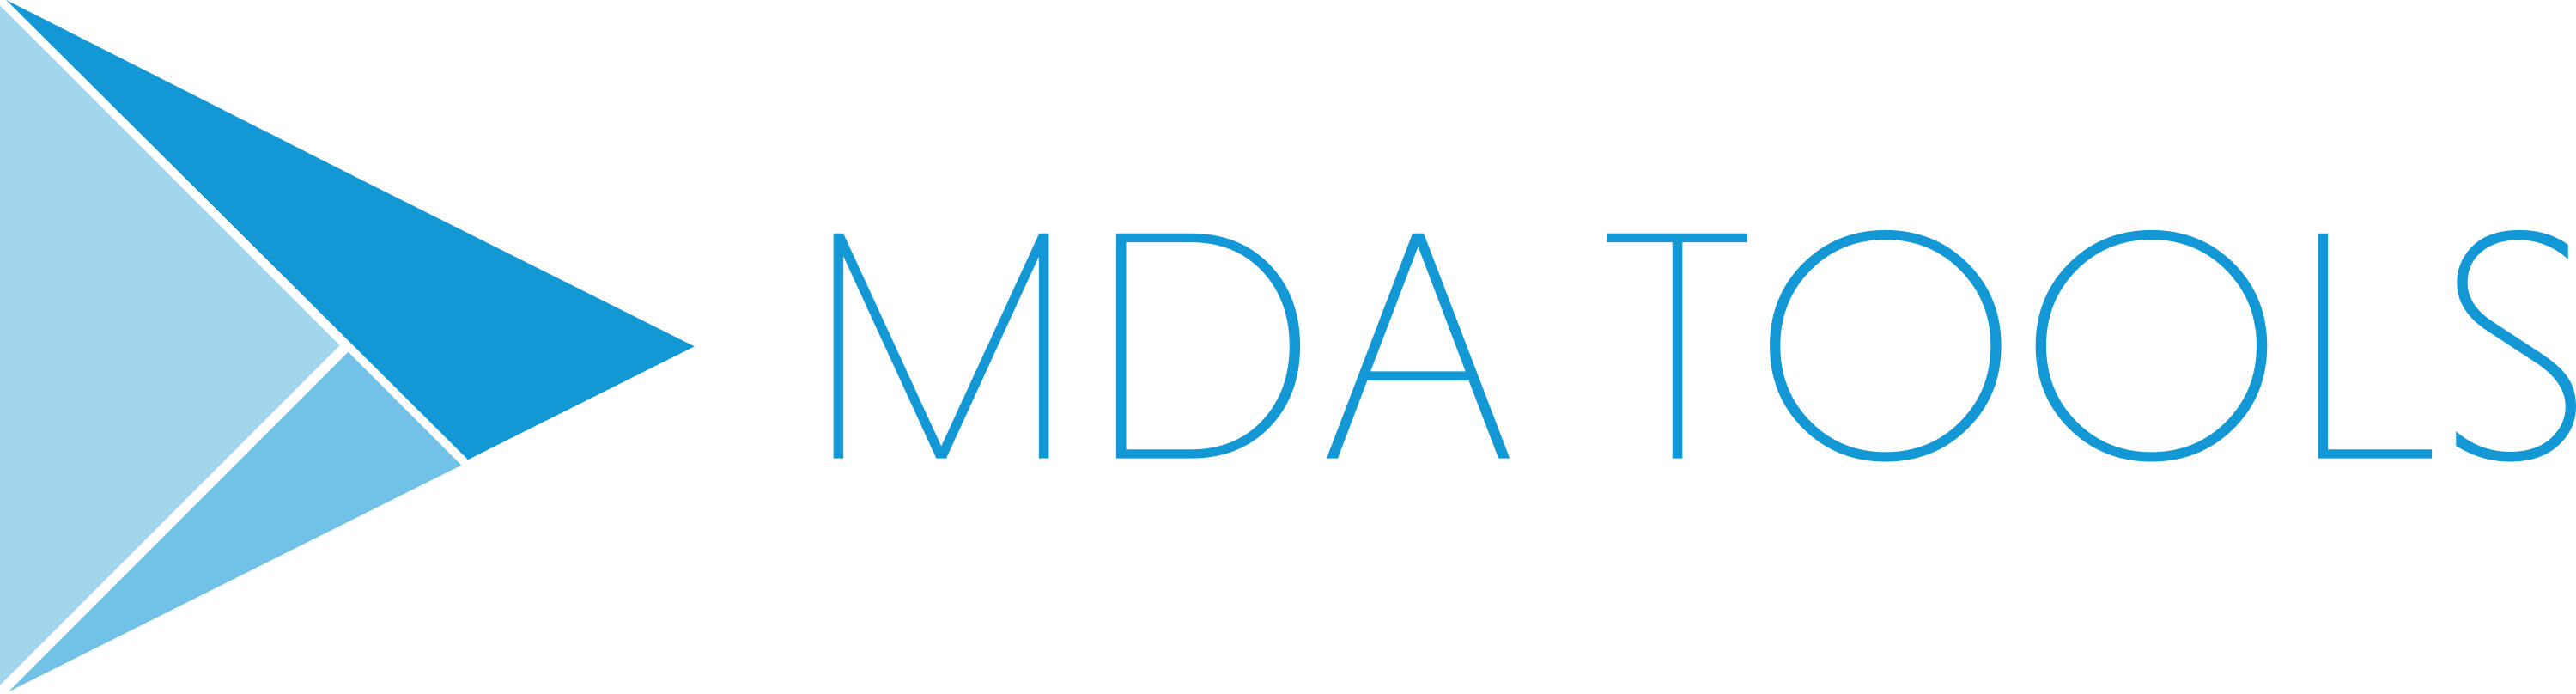 MDA Tools - Tools and ideas for model-driven software development